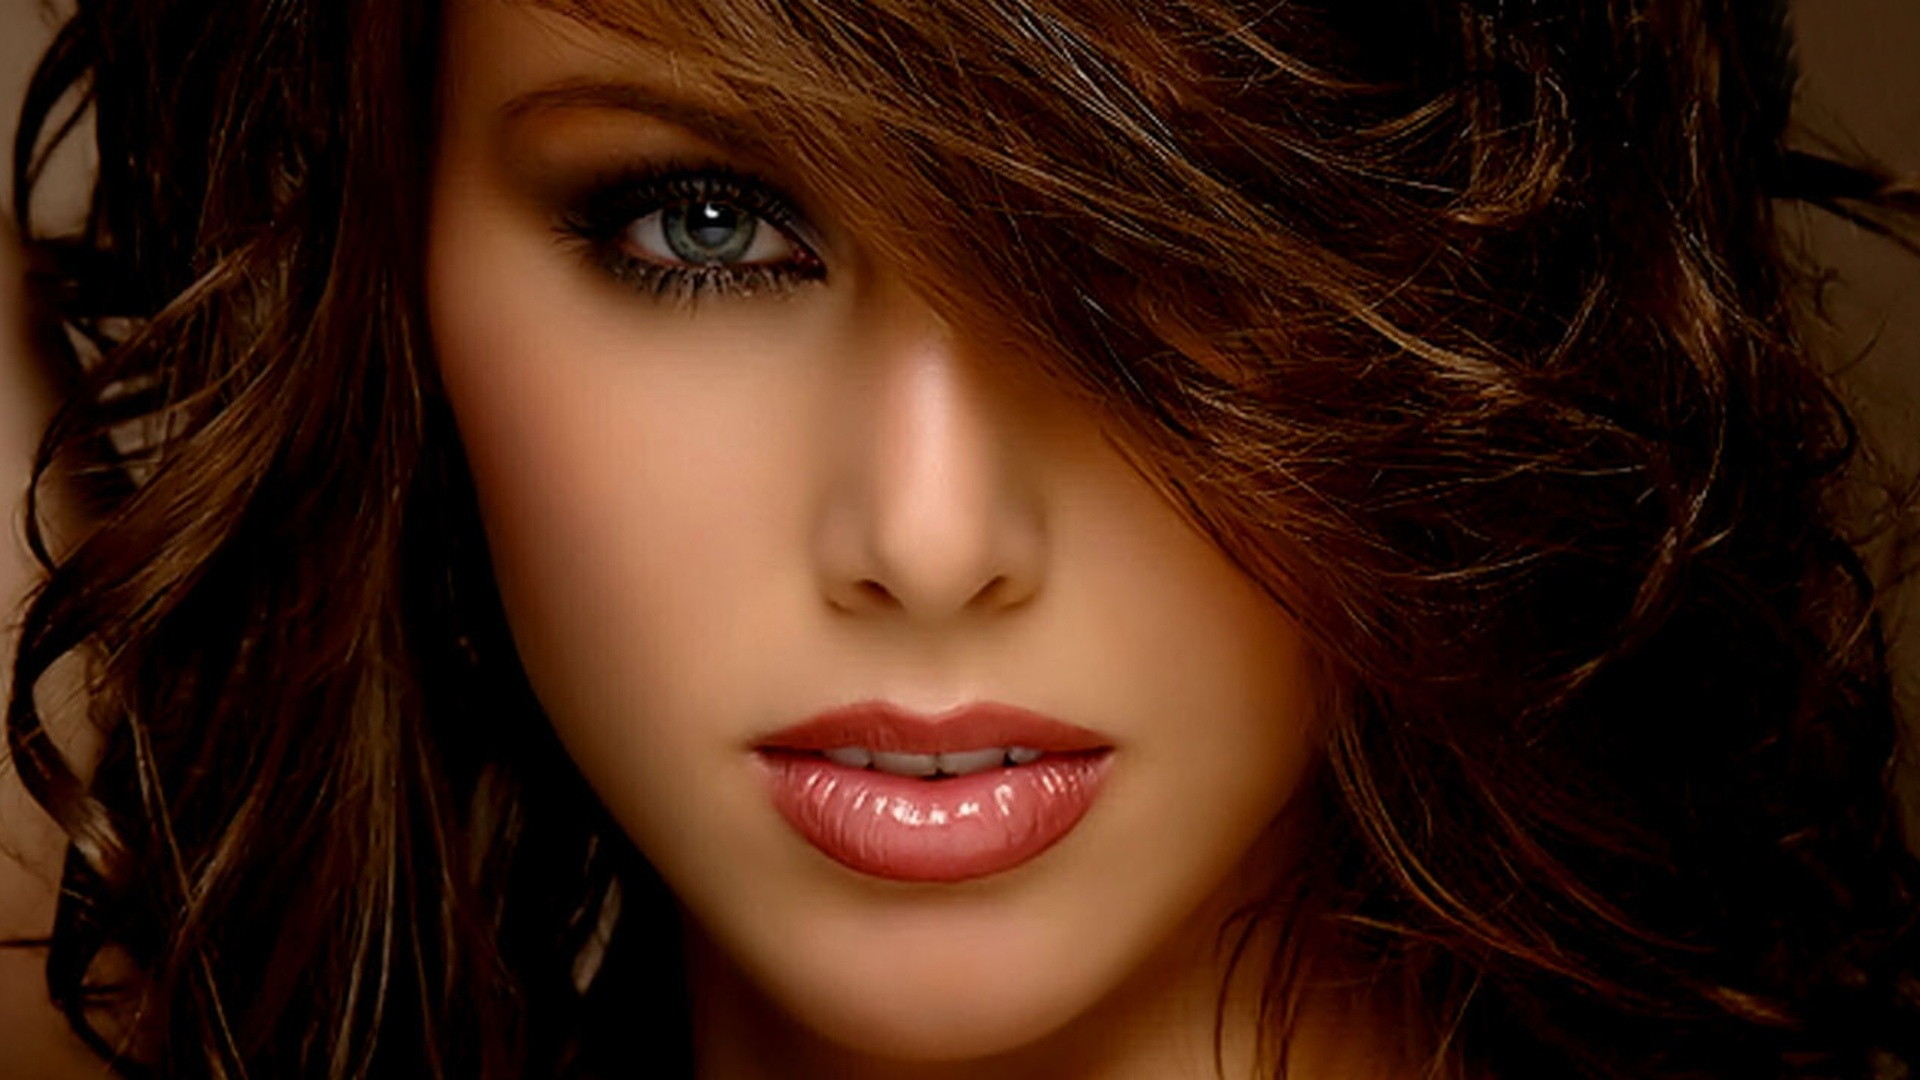 warrior latina women dating site Free to join & browse - 1000's of native american women - interracial dating for men & women - black, white, latino, asian, everyone.